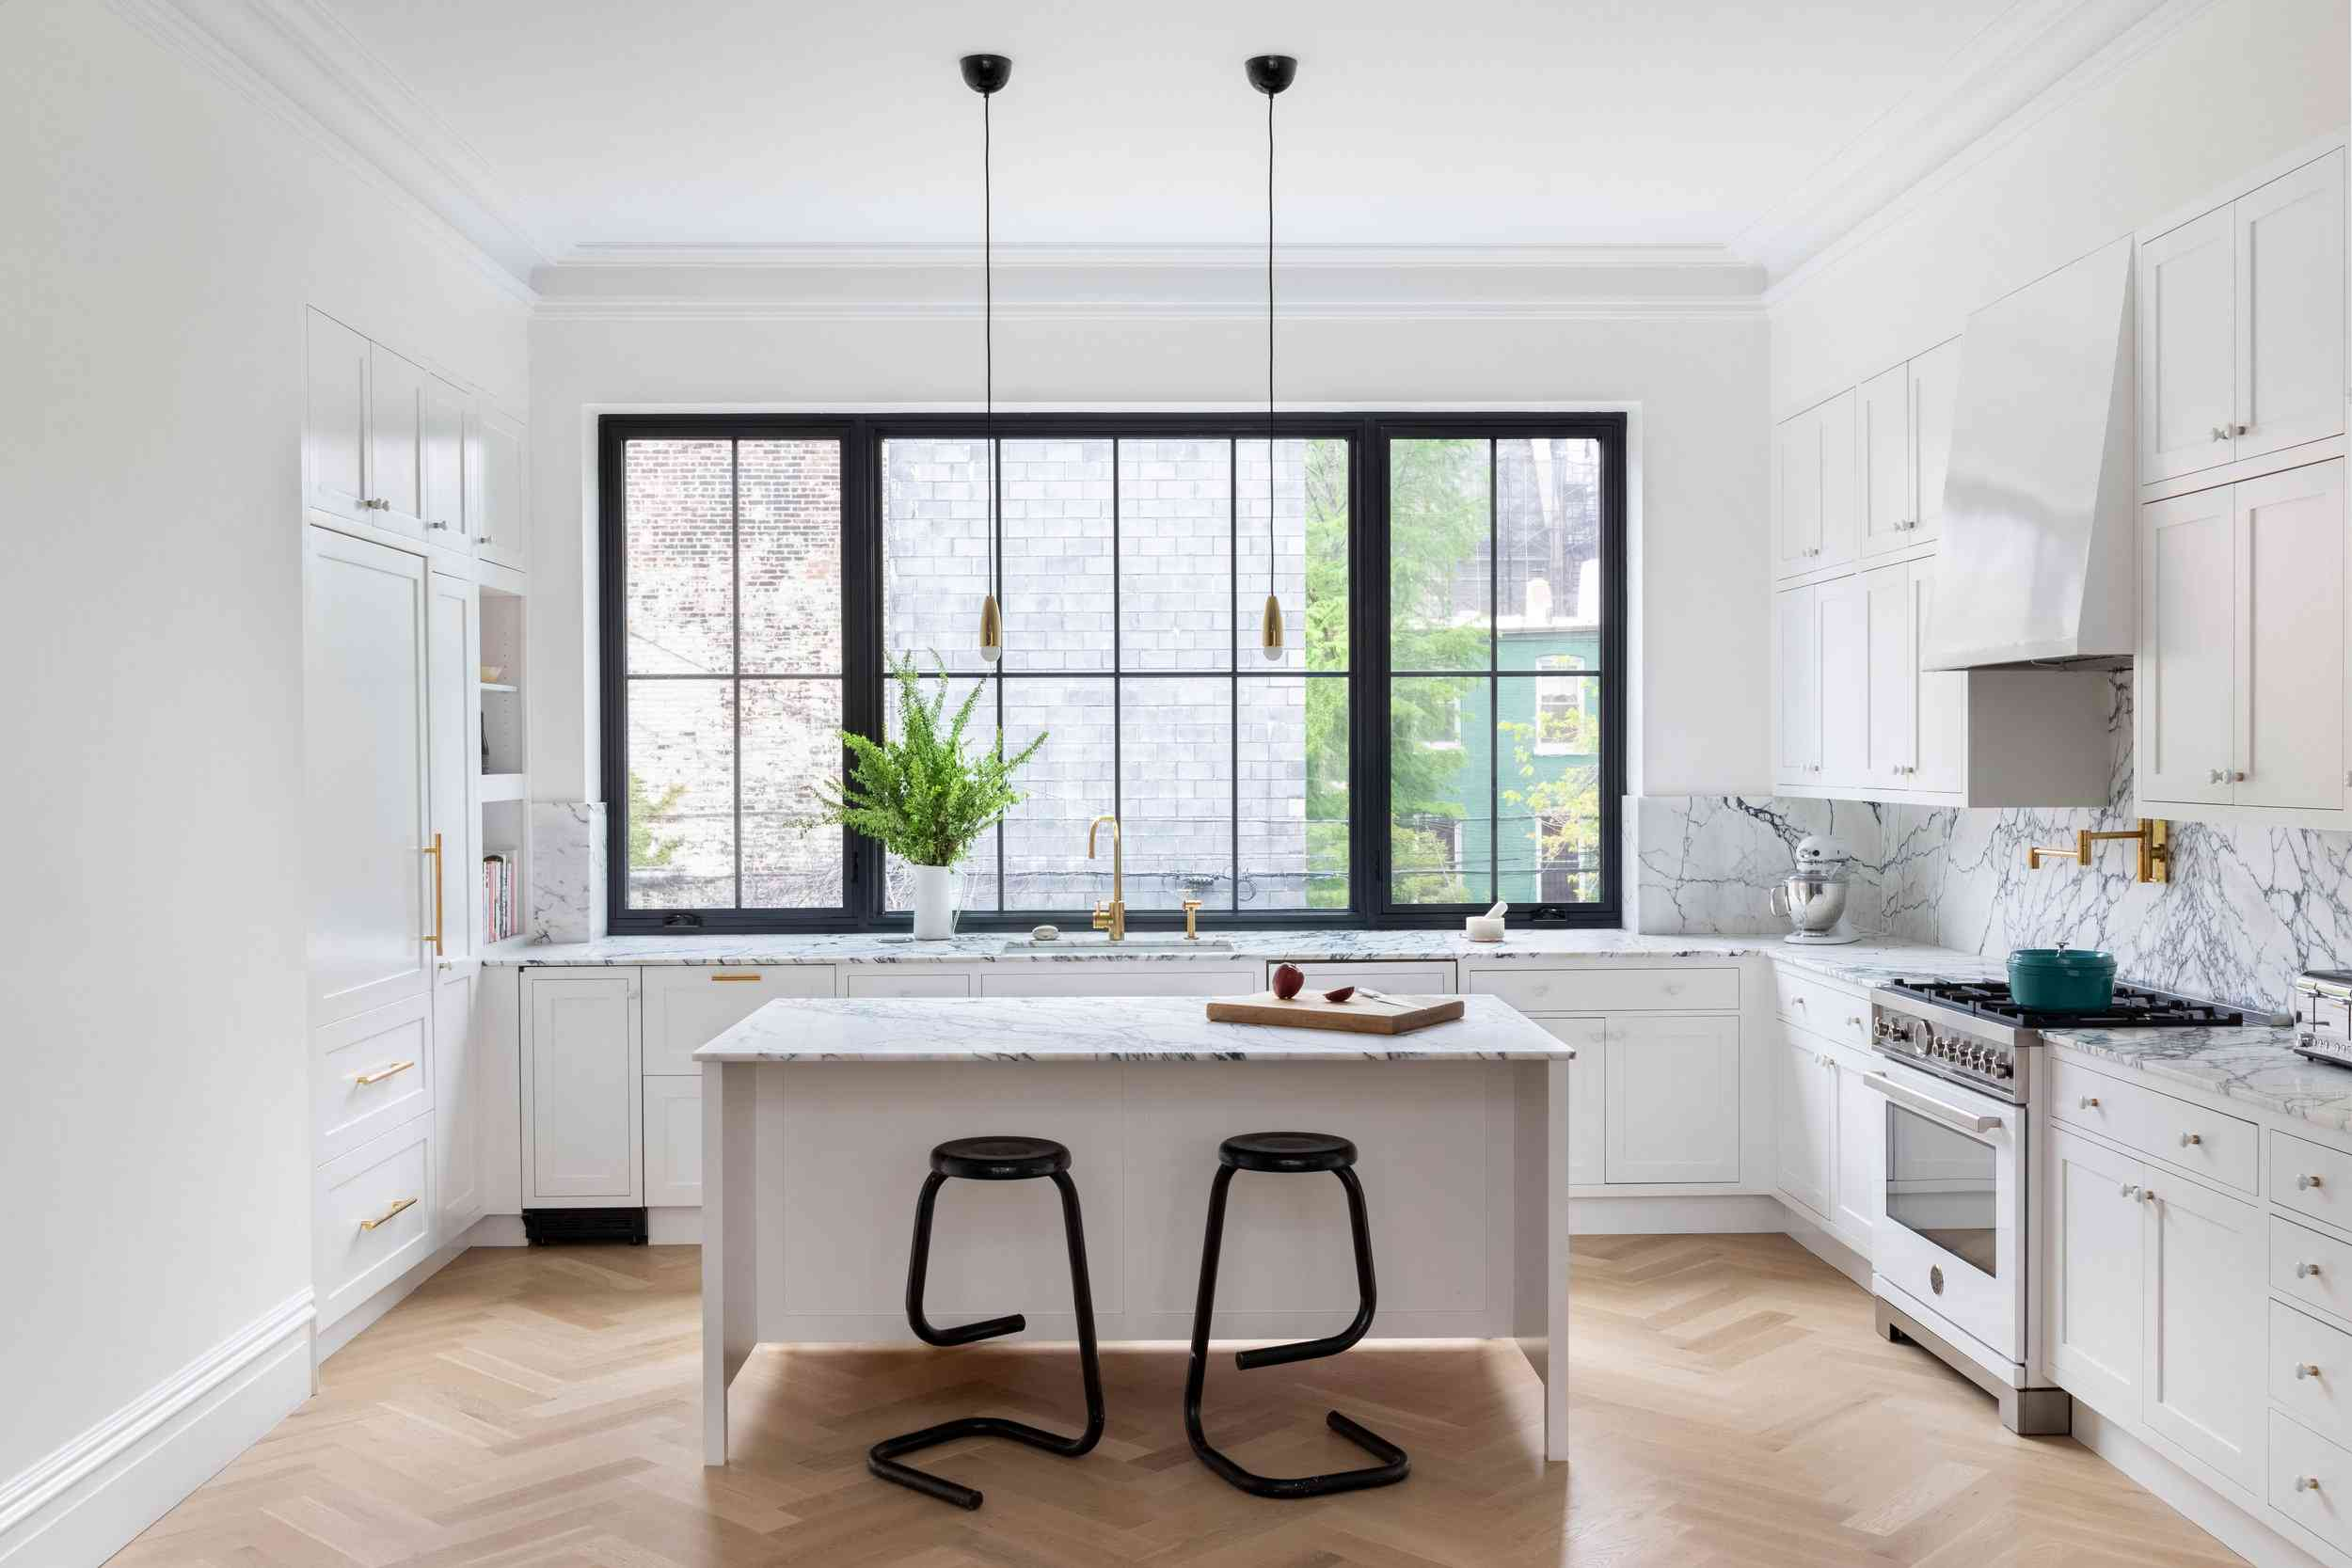 Classic white kitchen cabinetry